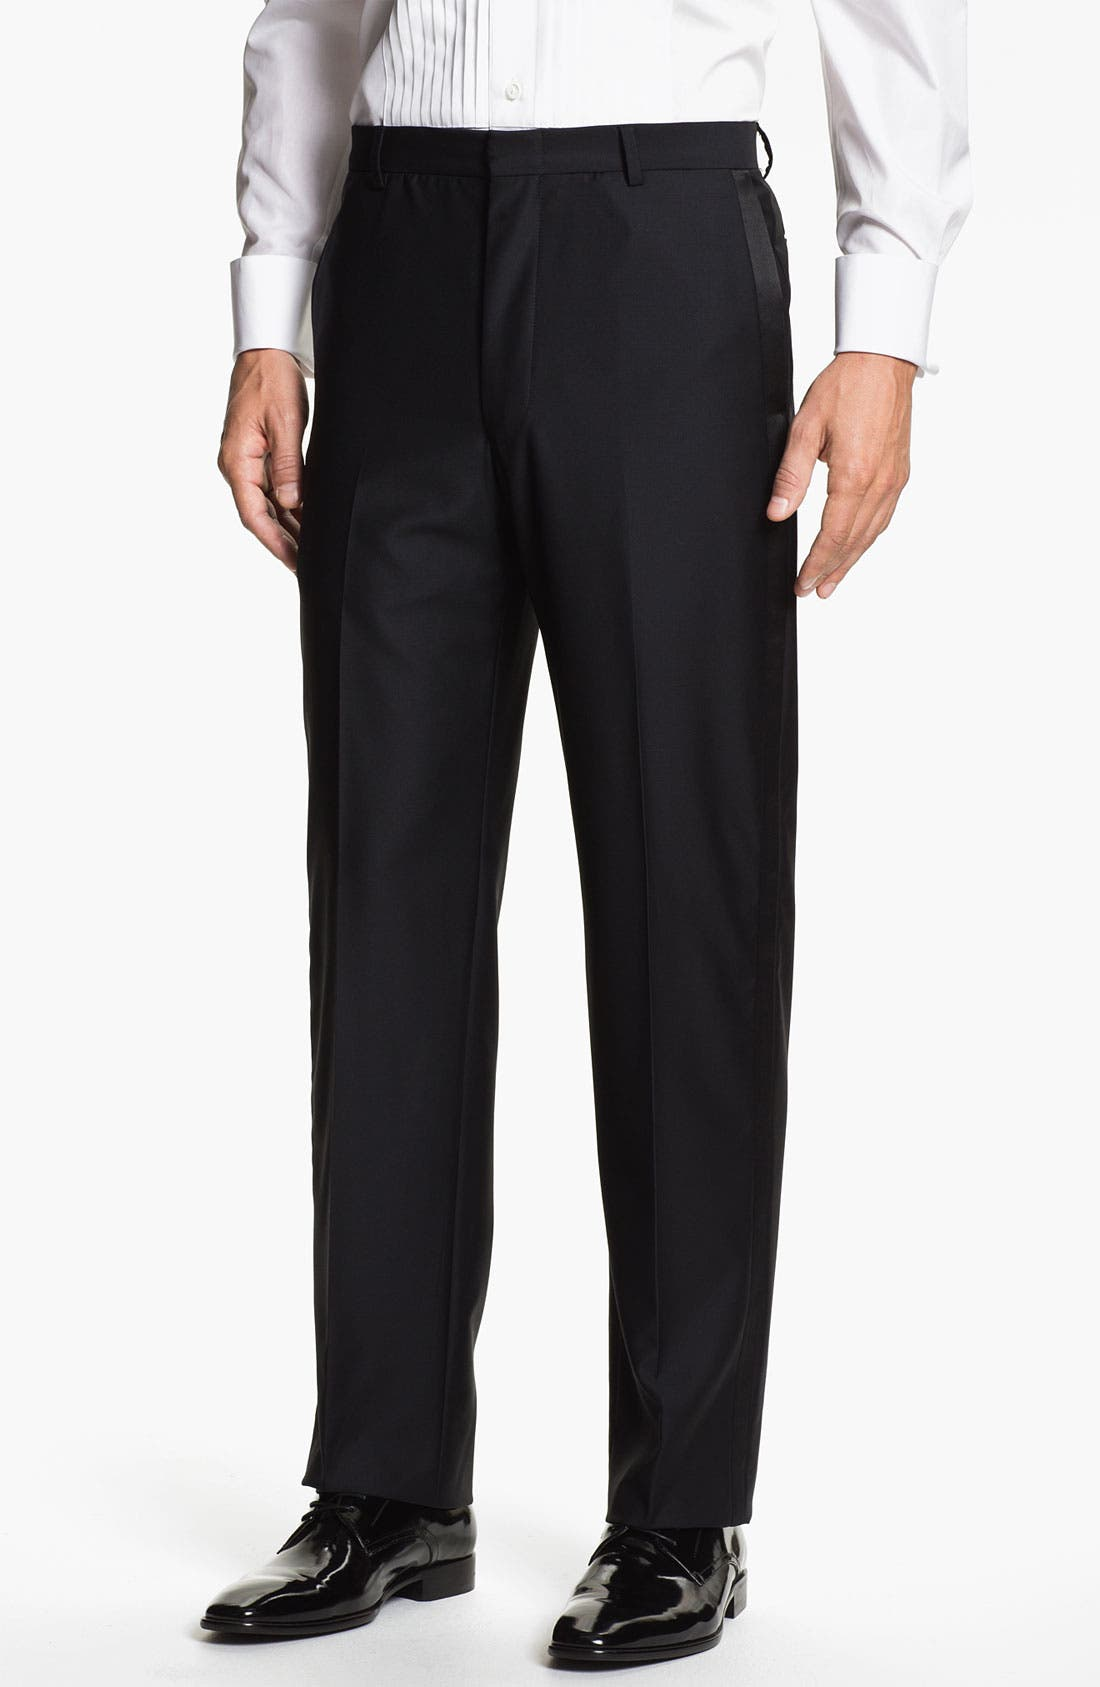 Alternate Image 1 Selected - John W. Nordstrom® Signature Flat Front Tuxedo Trousers